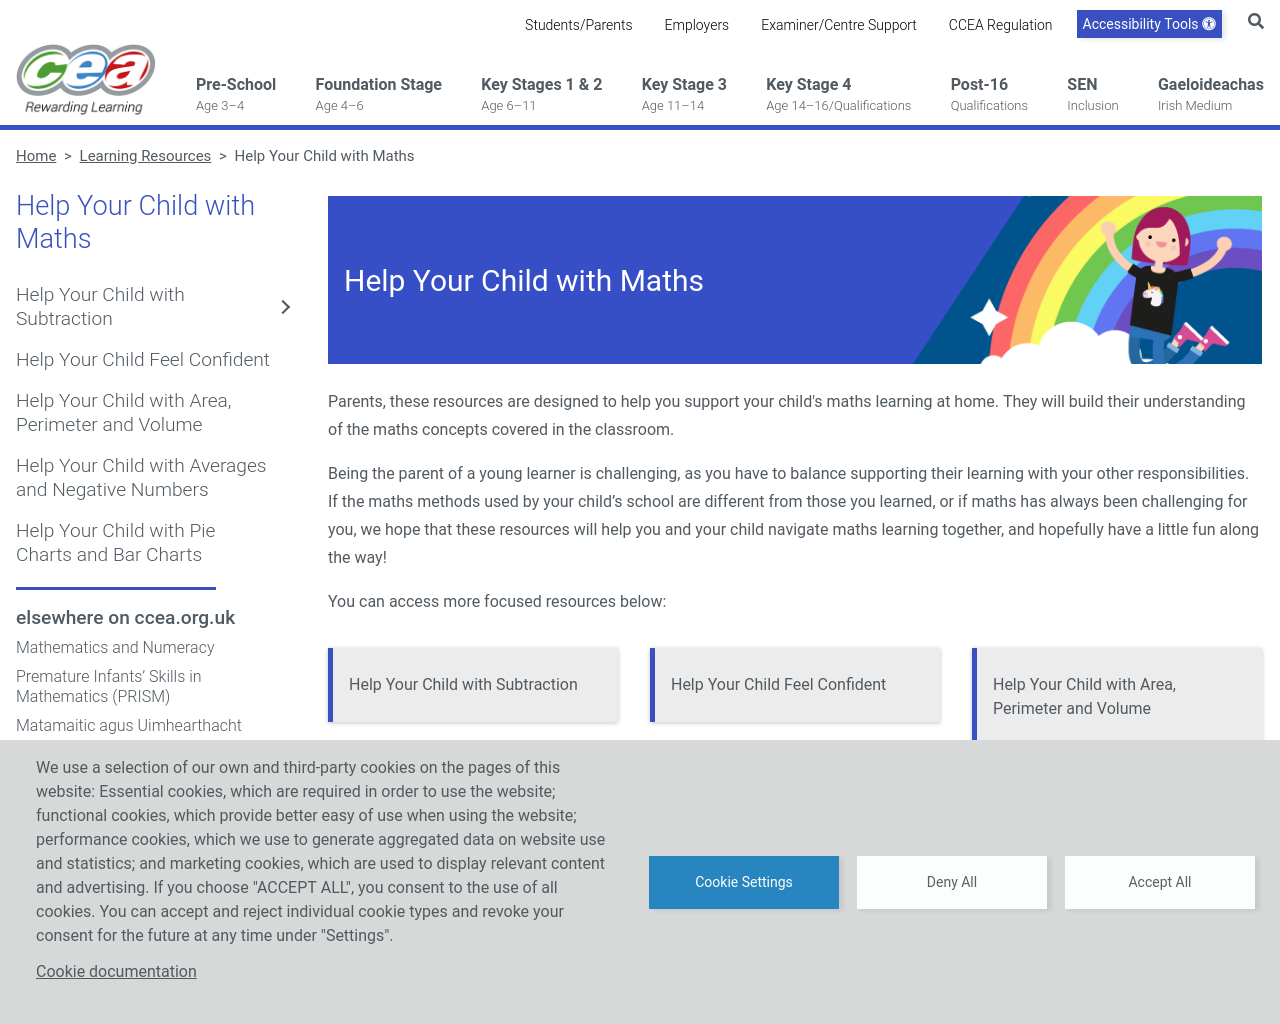 CCEA Learning Resources: Help Your Child with Maths